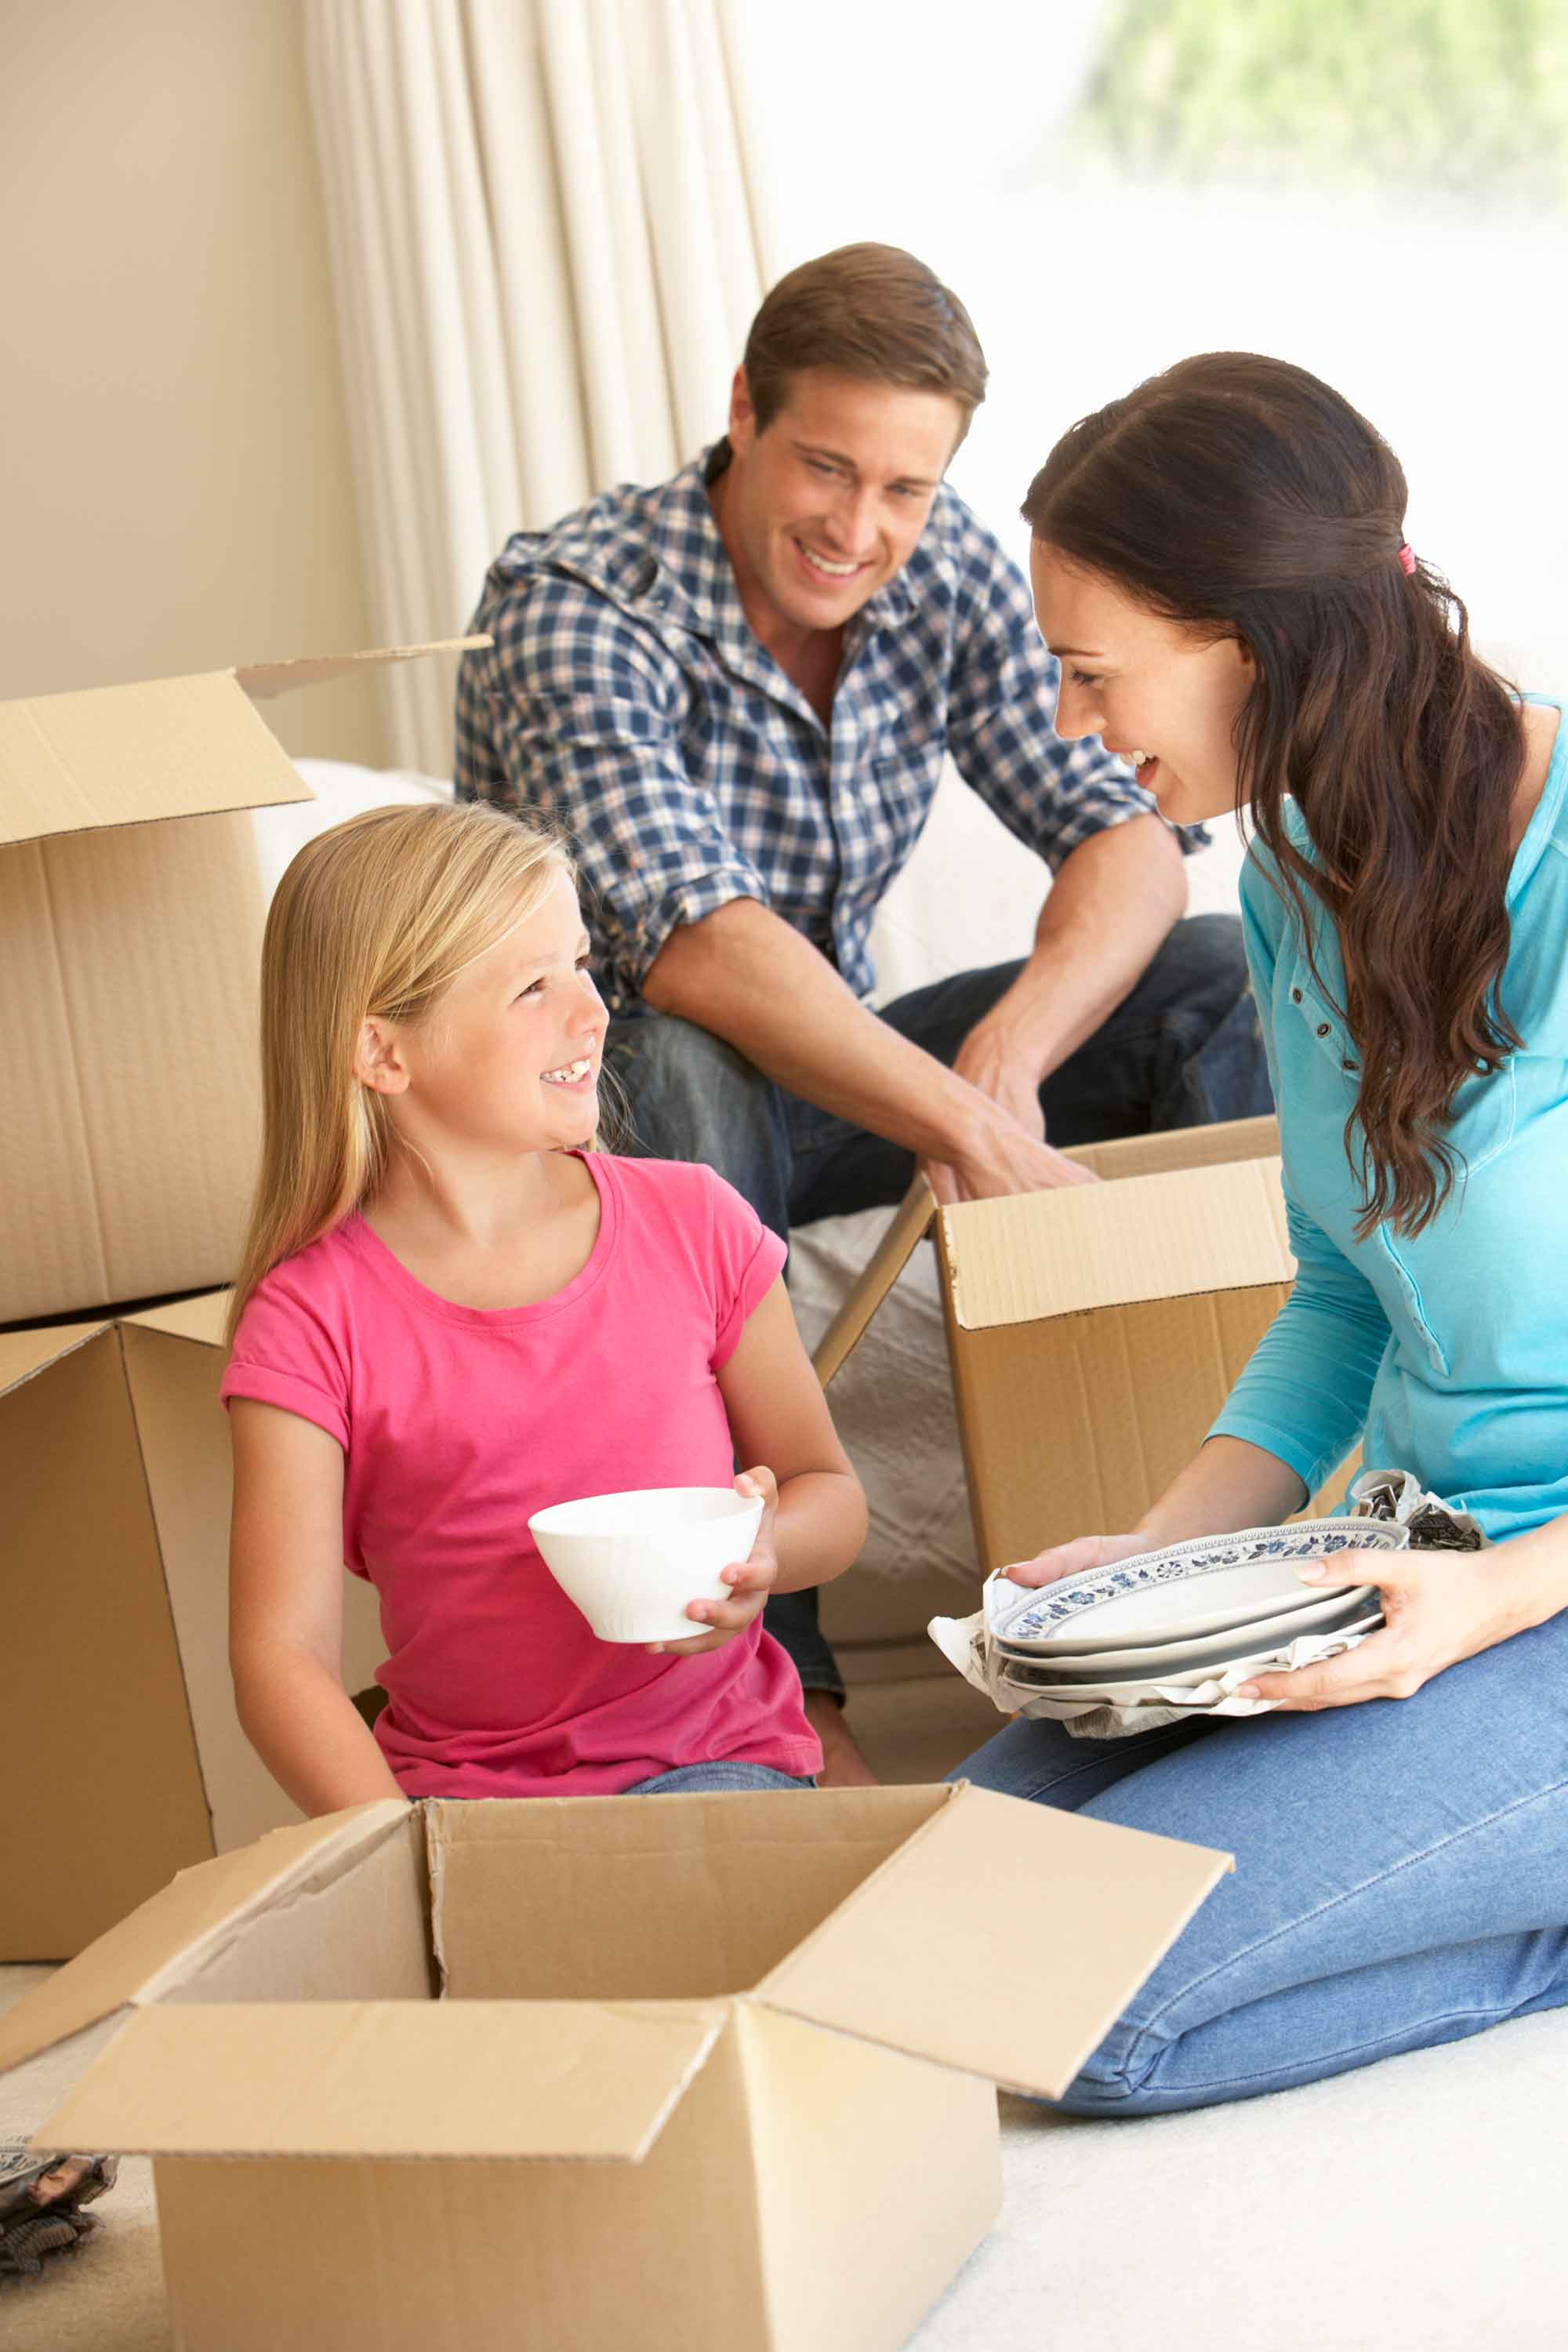 Family Looking for Homes for Sale and Moving Into New Home